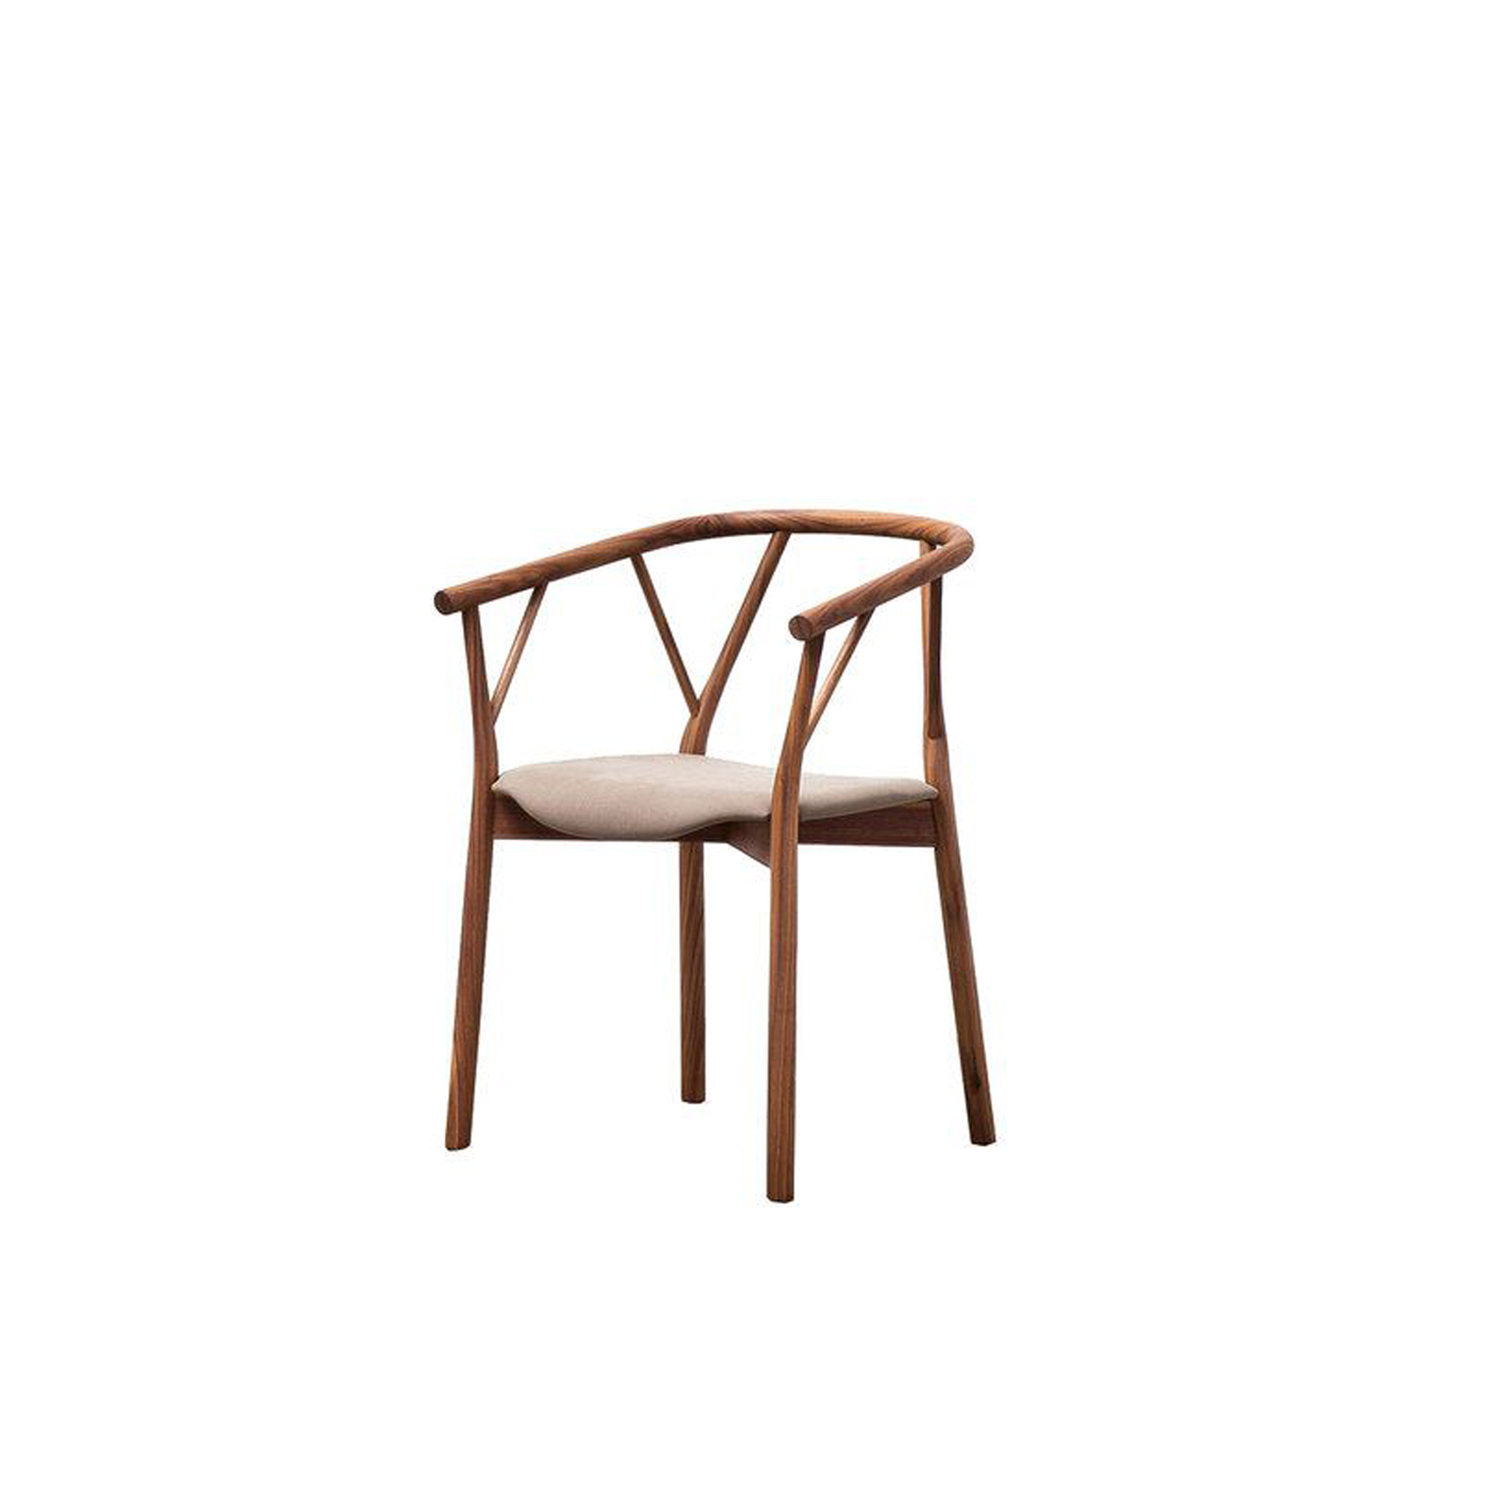 Valerie Armchair - The armchair is made in bended wood. It represents the essence of the sitting archetype, due to the used materials and to the form. Doesn't want to impress, just to perform in the better way the primary function: to accommodate. The armchair develops the contrast between the essential structure and the wooden seat: the first devoted to the support and the second, to the comfort. The armchair has a solid wood structure, available in the listed wooden finishes, stained aniline or lacquered. Structure available with or without seat-cushion, upholstered in the listed fabrics.